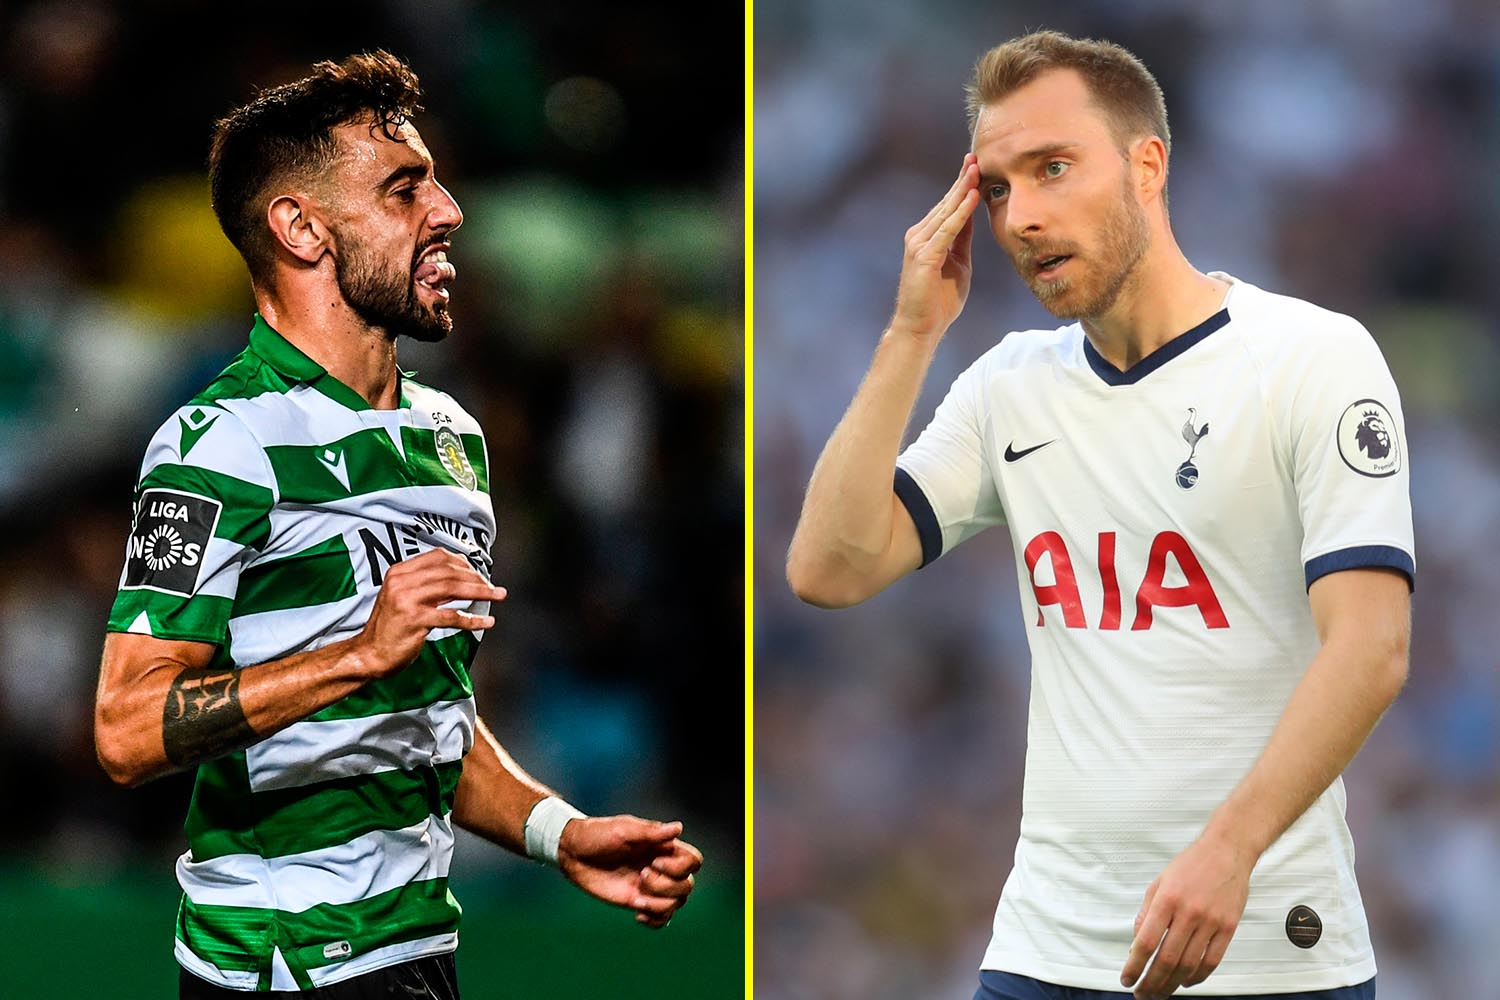 """Transfer news and gossip LIVE: Chelsea will announce the signing of January 1st, Eriksen """"accepts an agreement"""" to leave Tottenham, Man Utd's Fernandes offer claimed - talkSPORT.com"""